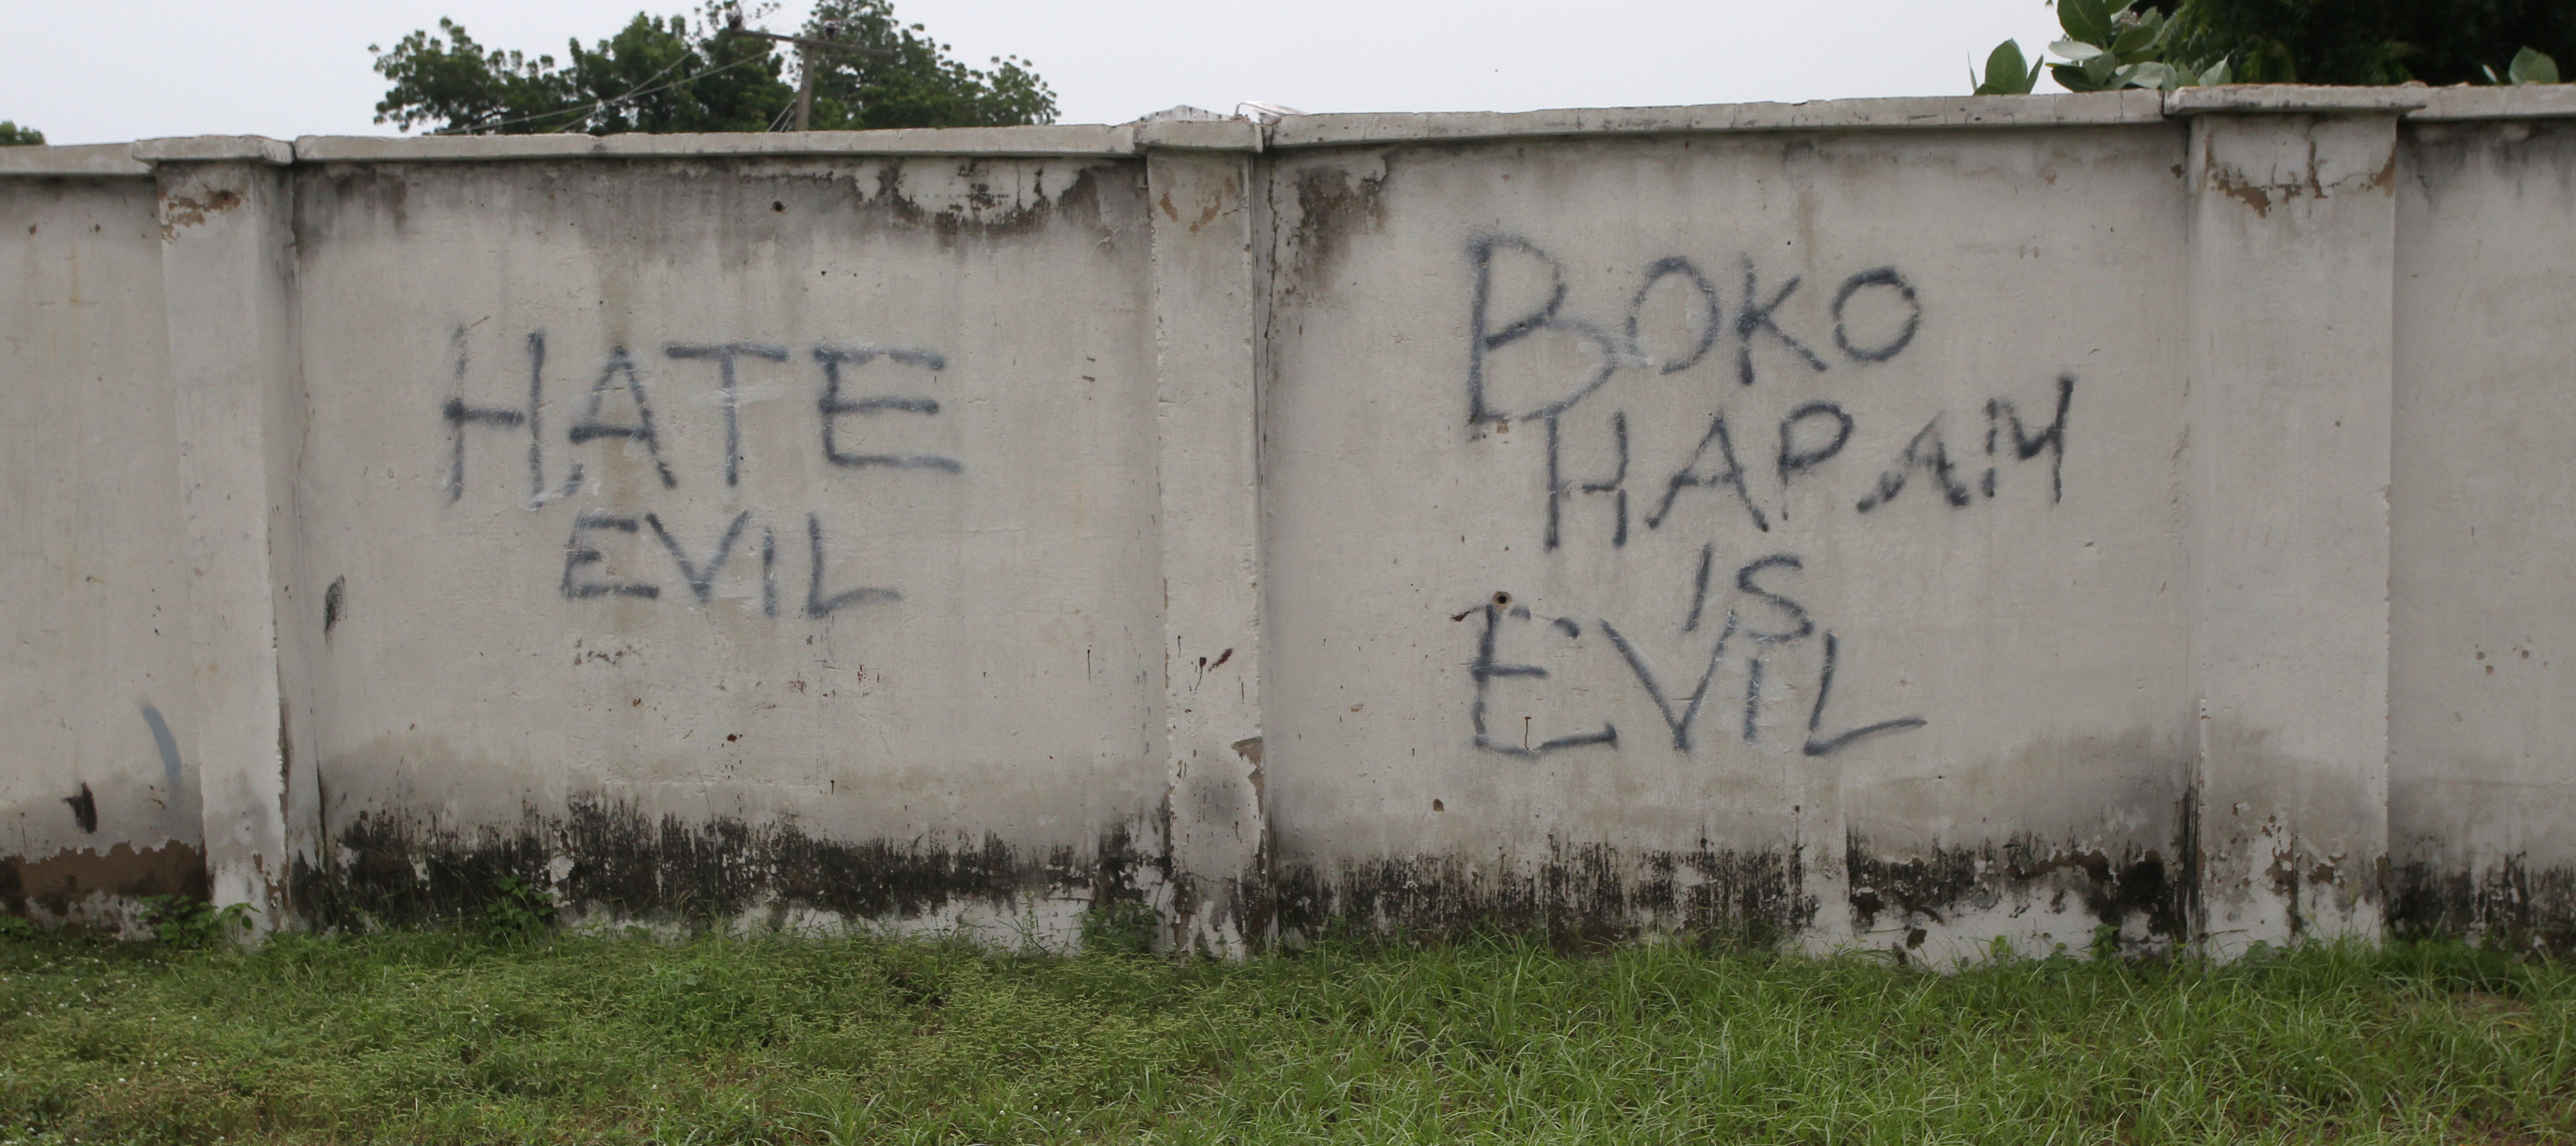 FILE PHOTO: Writings describing Boko Haram are seen on the wall along a street in Bama, in Borno, Nigeria August 31, 2016. Picture taken August 31, 2016. REUTERS/Afolabi Sotunde/File Photo - RC1BC1D7C110